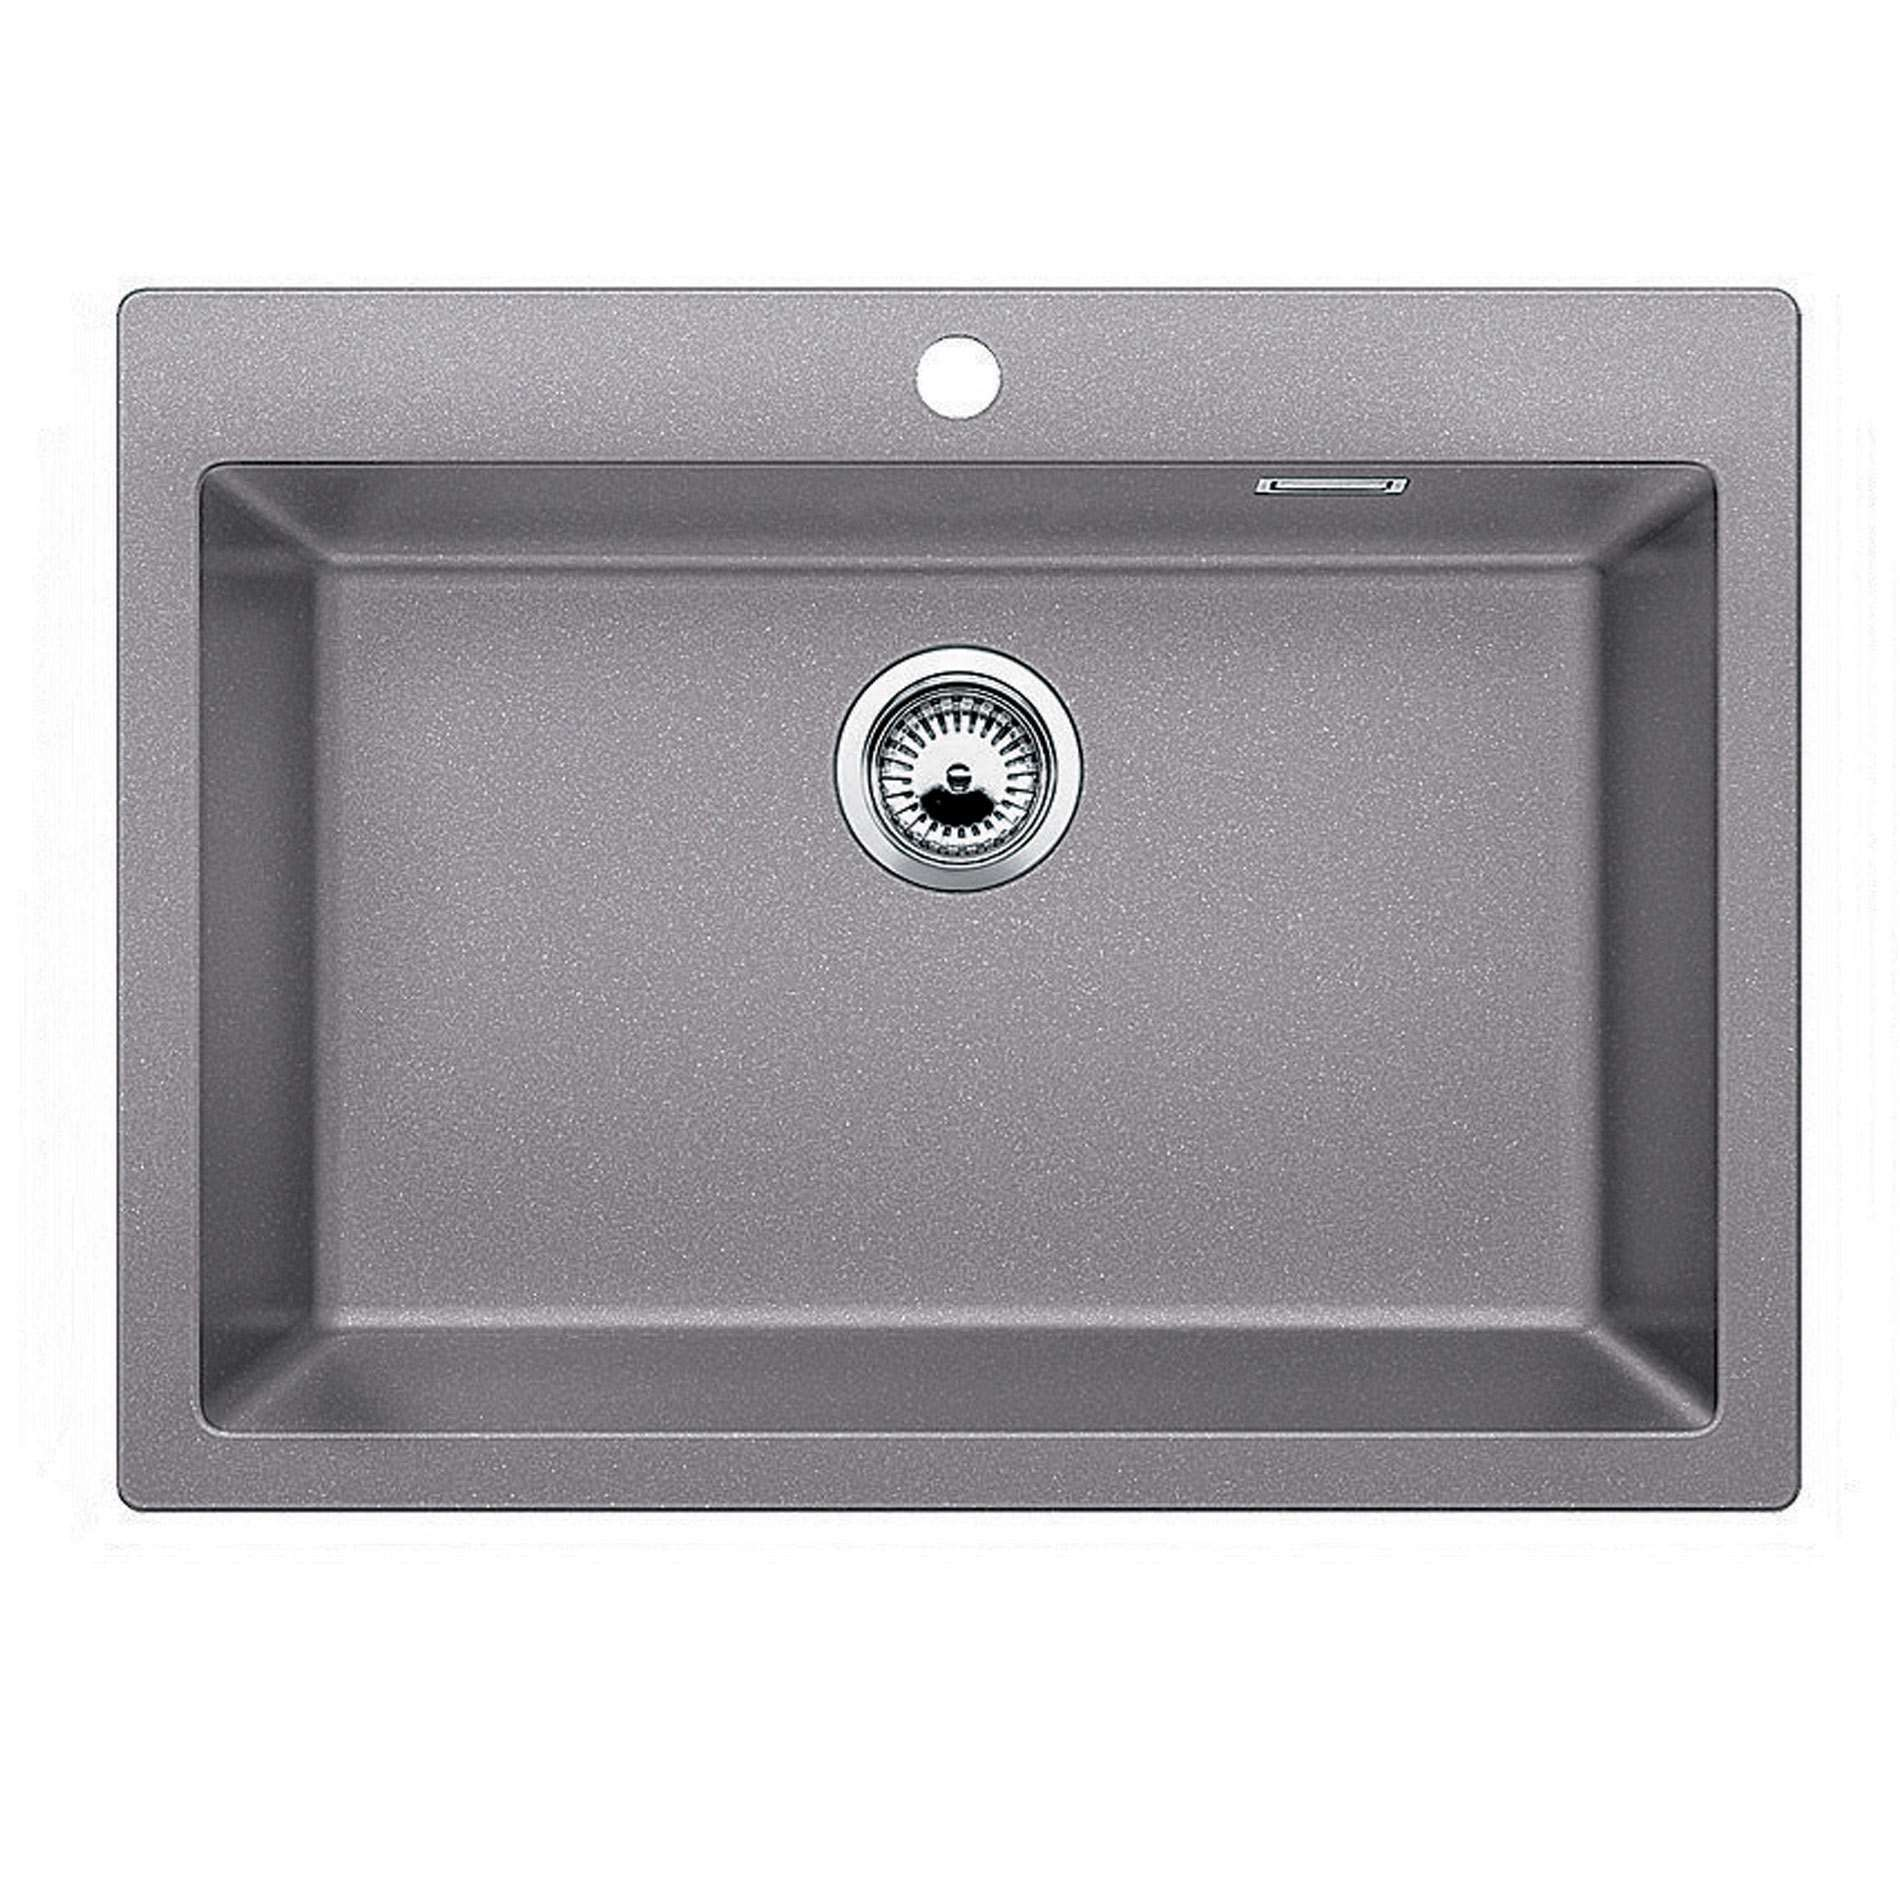 blanco silgranit kitchen sink blanco silgranit kitchen sink pleon 8 besto 4785